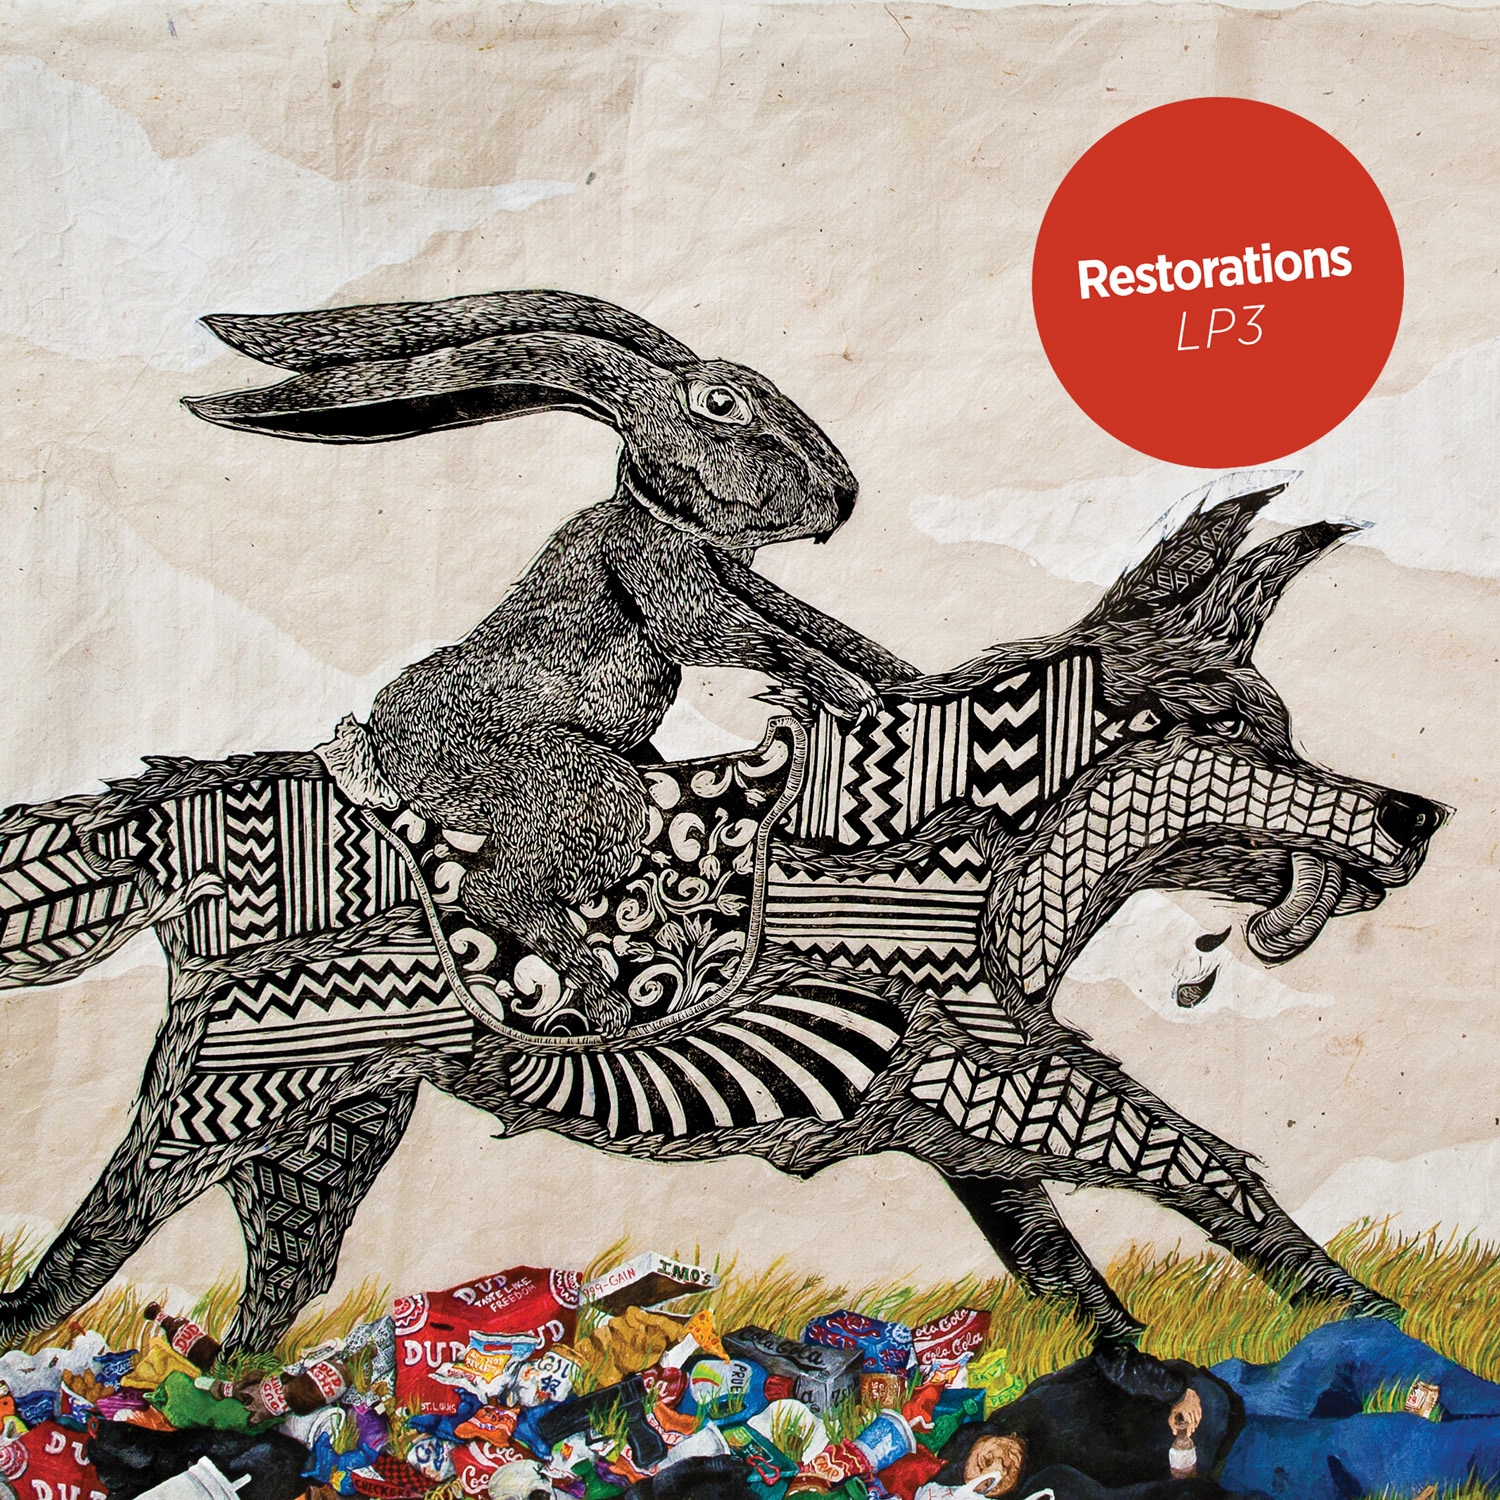 Restorations - LP3 Review 11